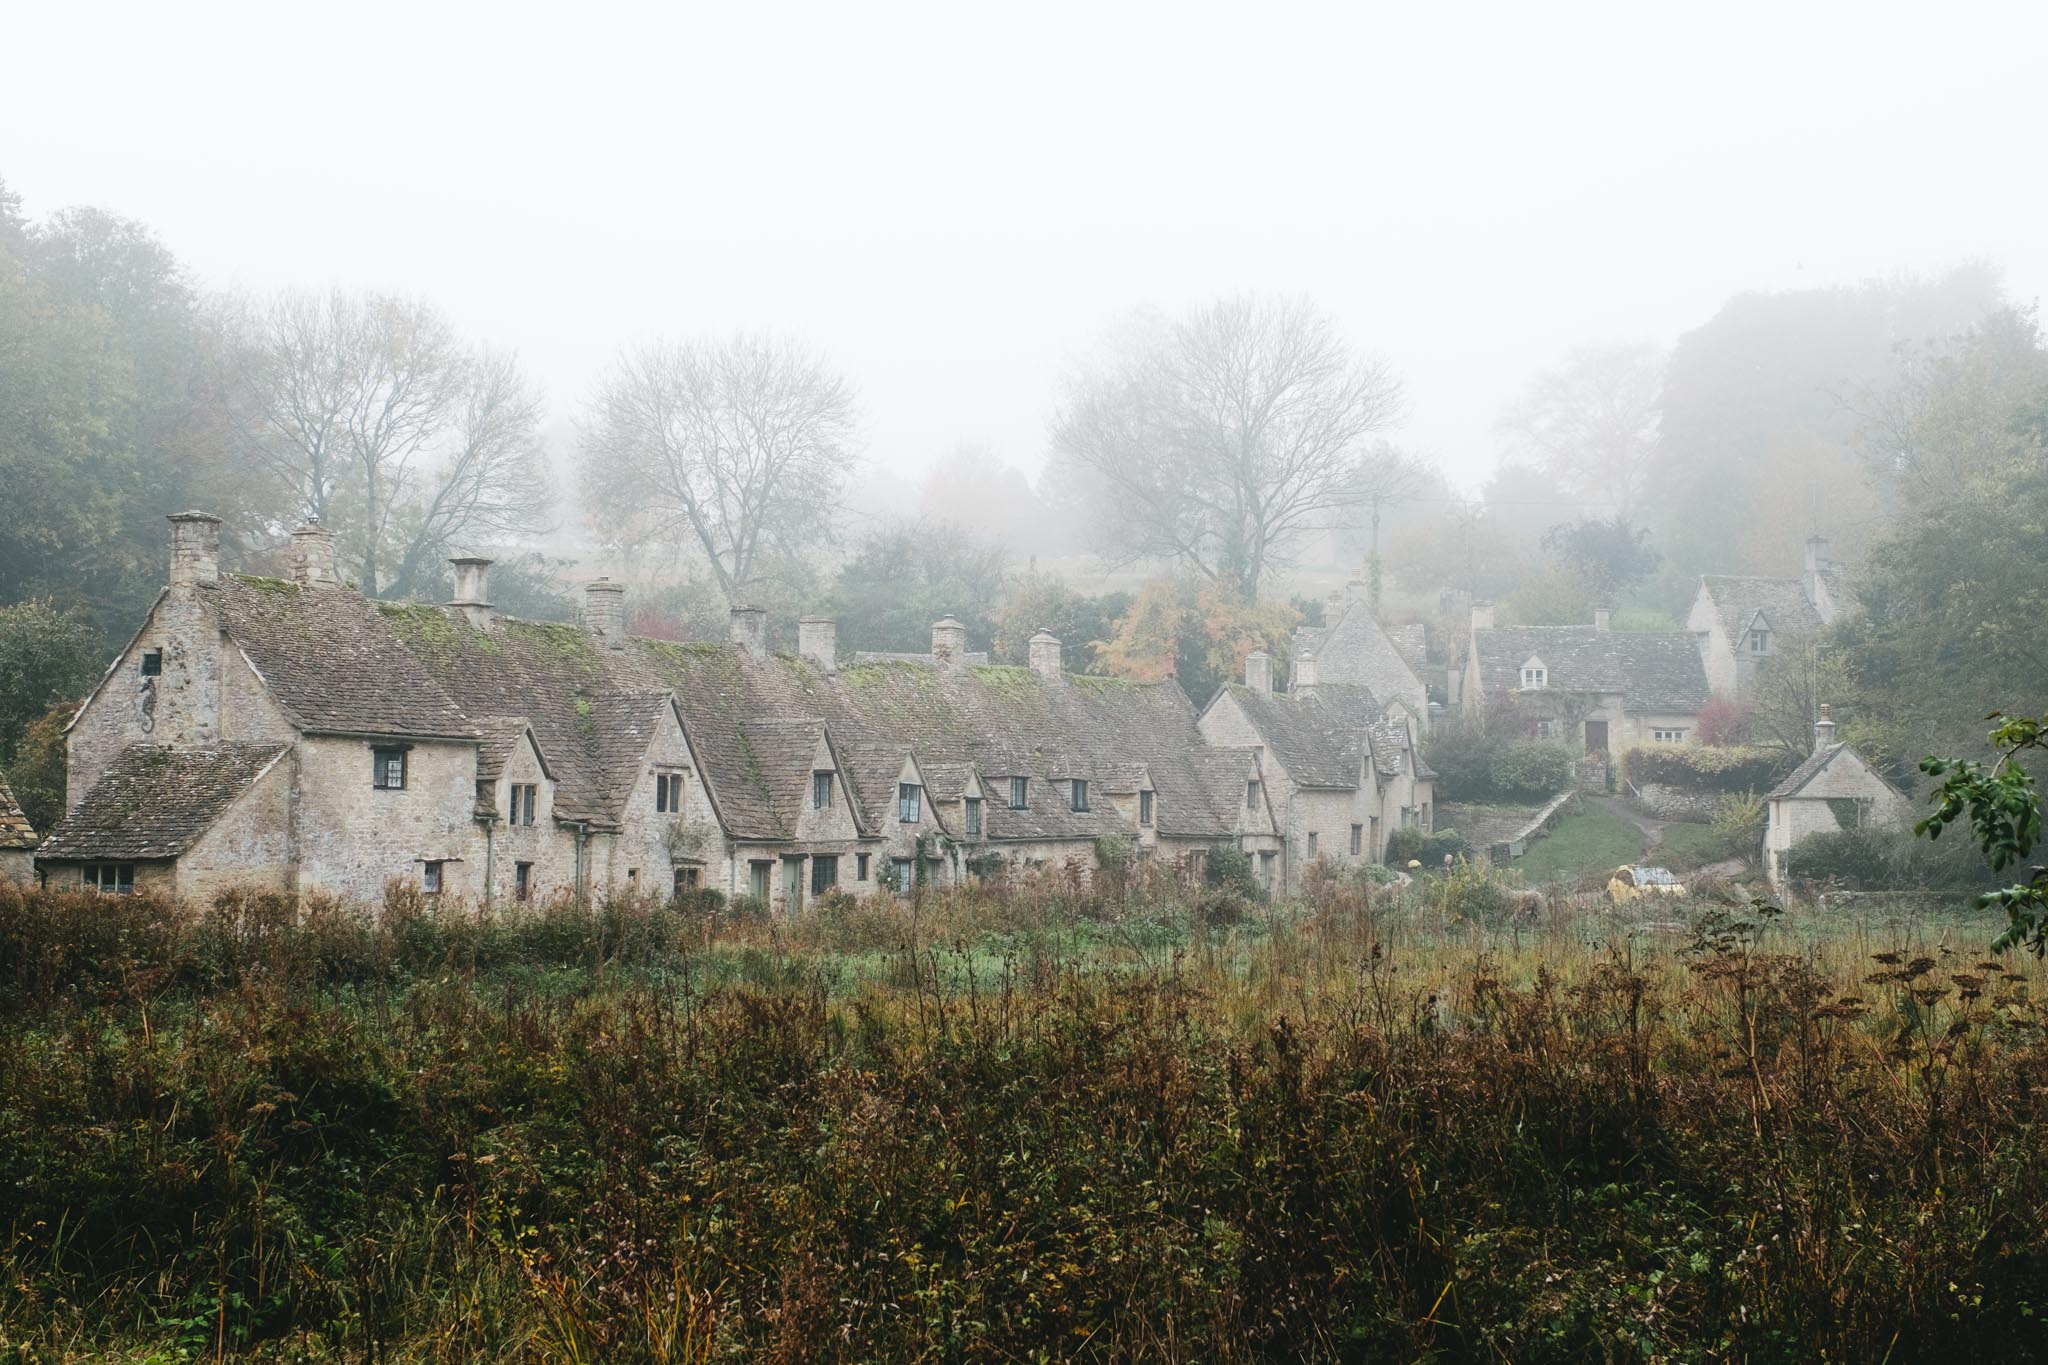 Rabbies-Cotswolds-161031-110030.jpg